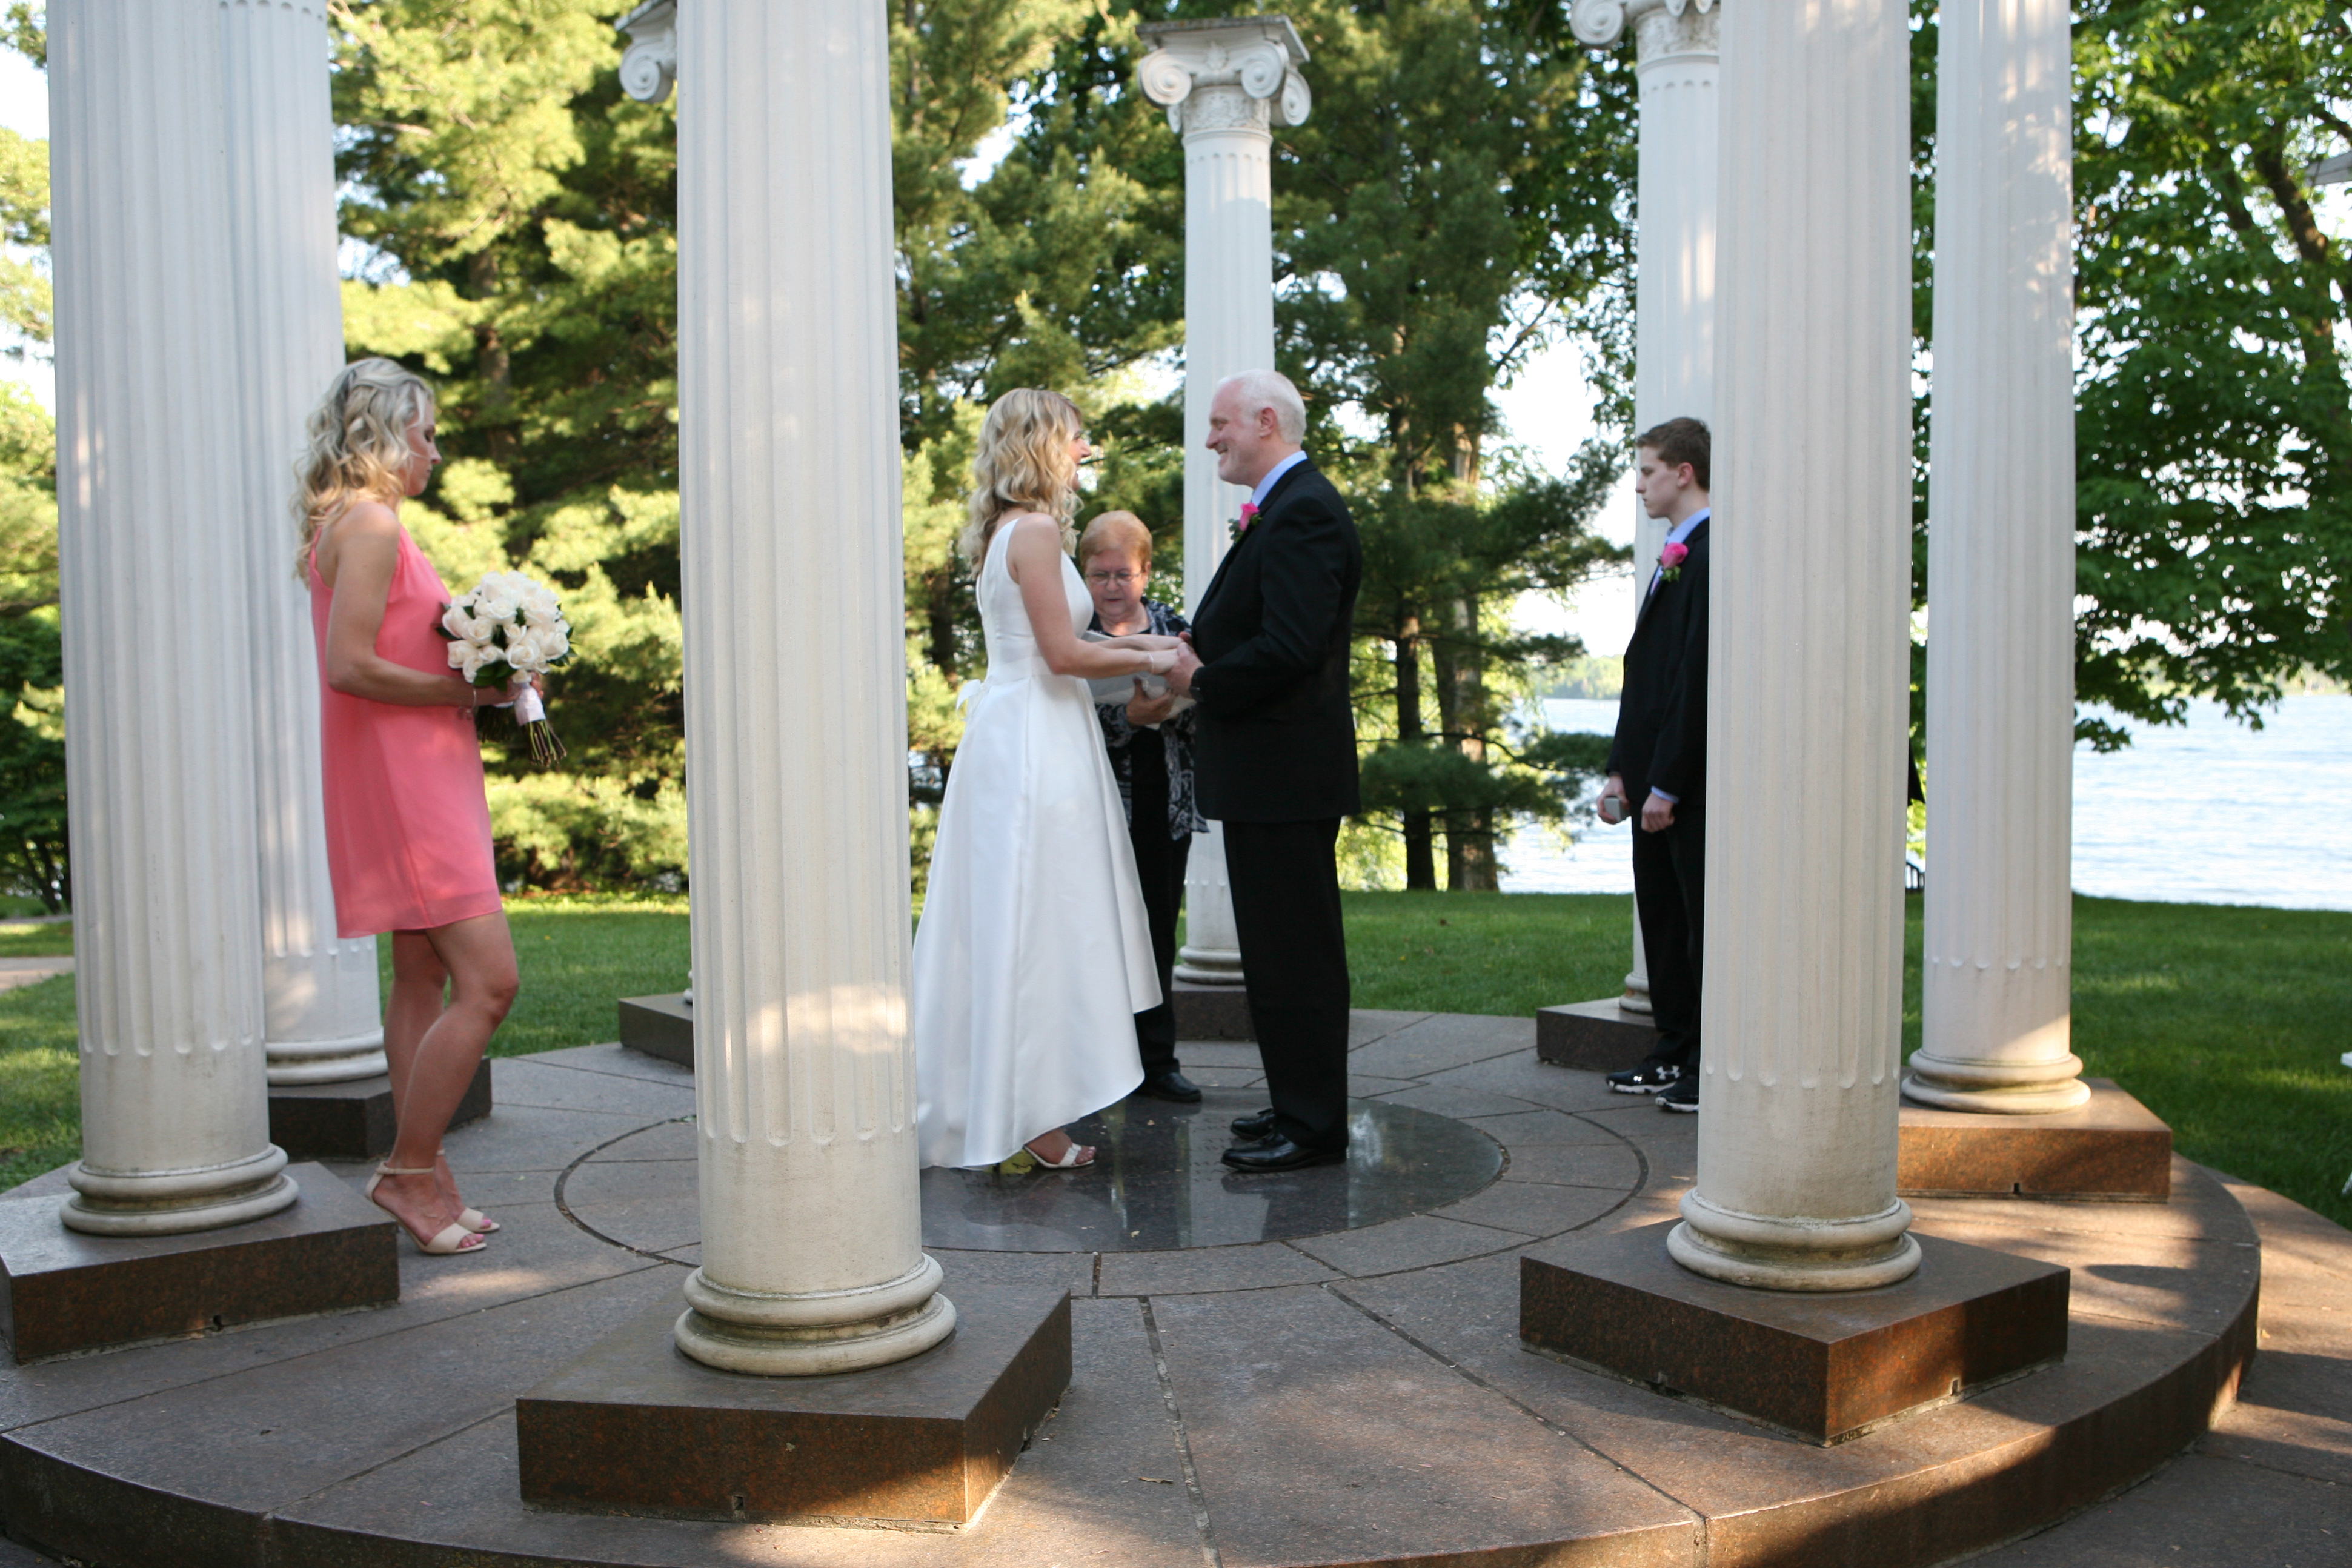 Evening wedding at Norerenberg Garden Mi